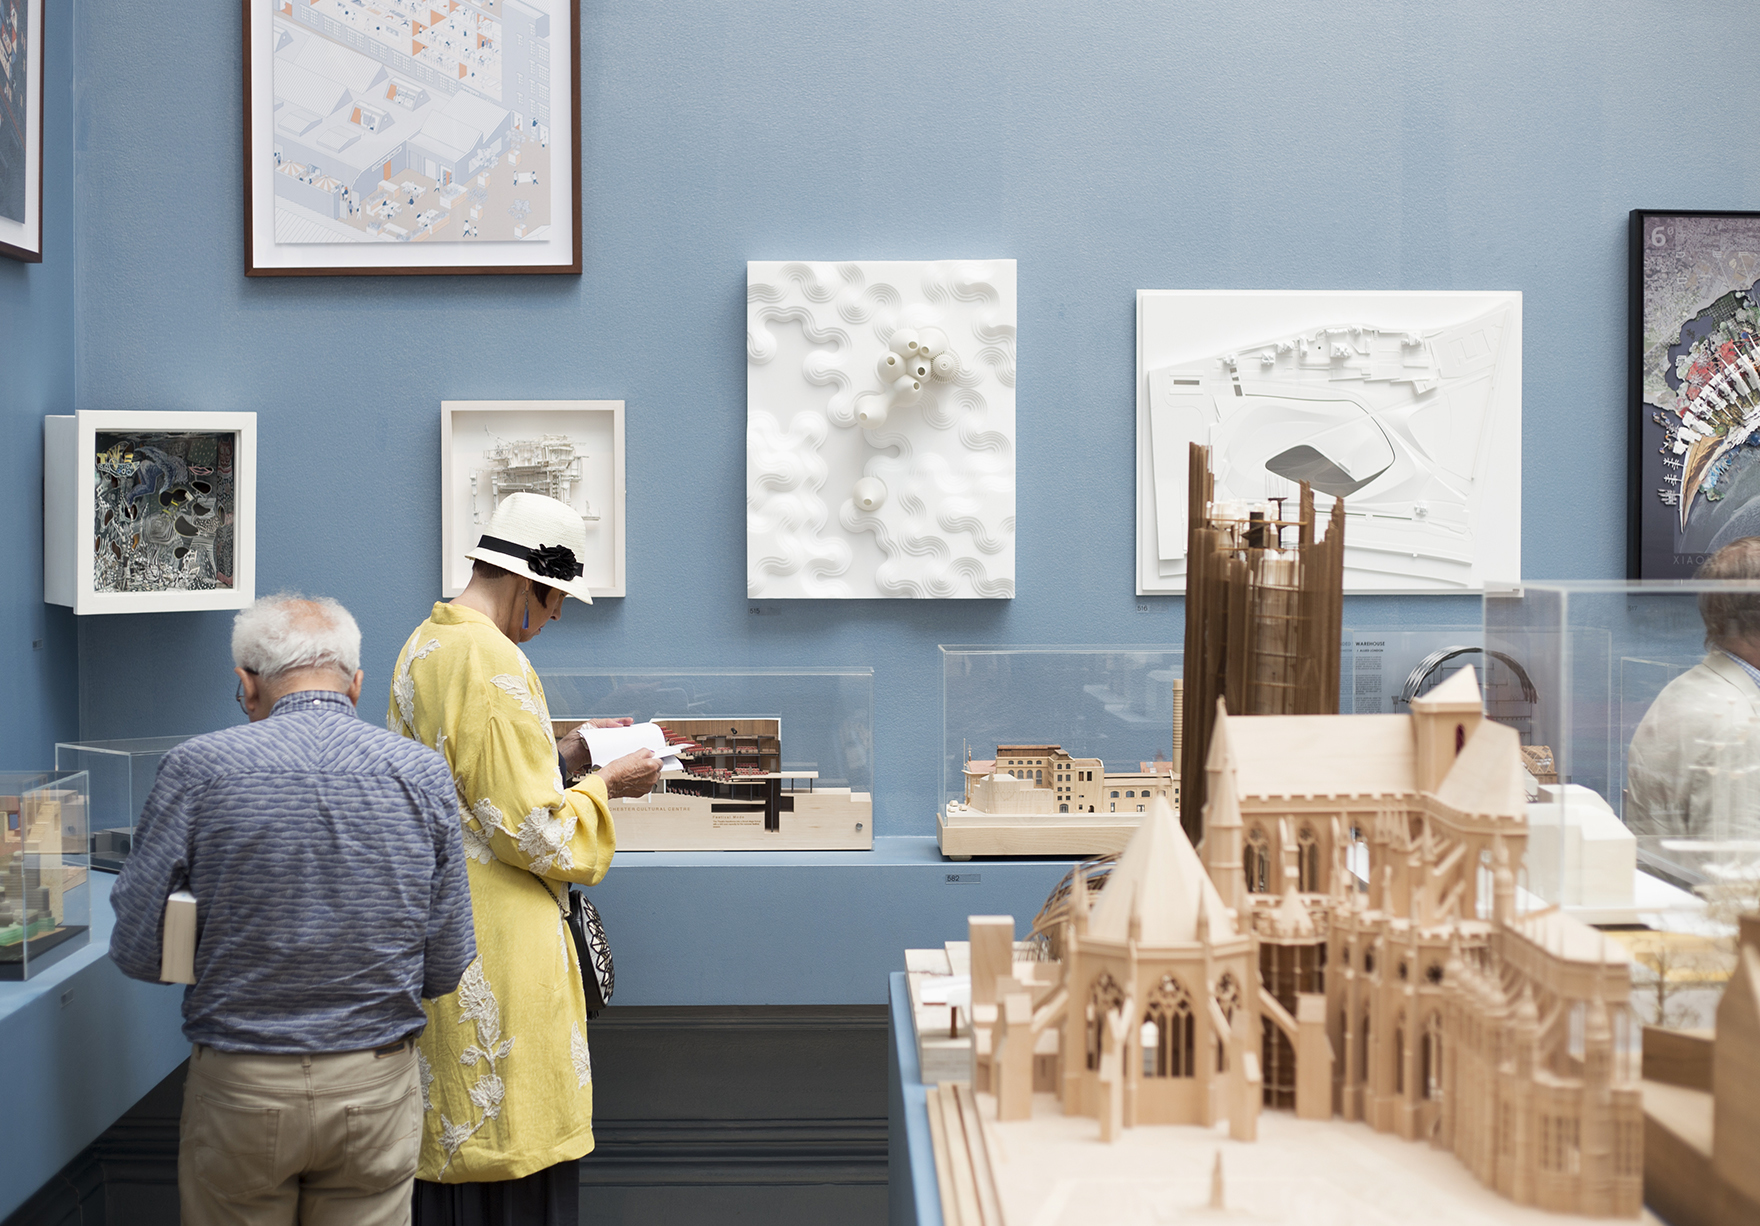 Royal Academy Ra Summer Exhibition Germination Model In The Exhibition Lh